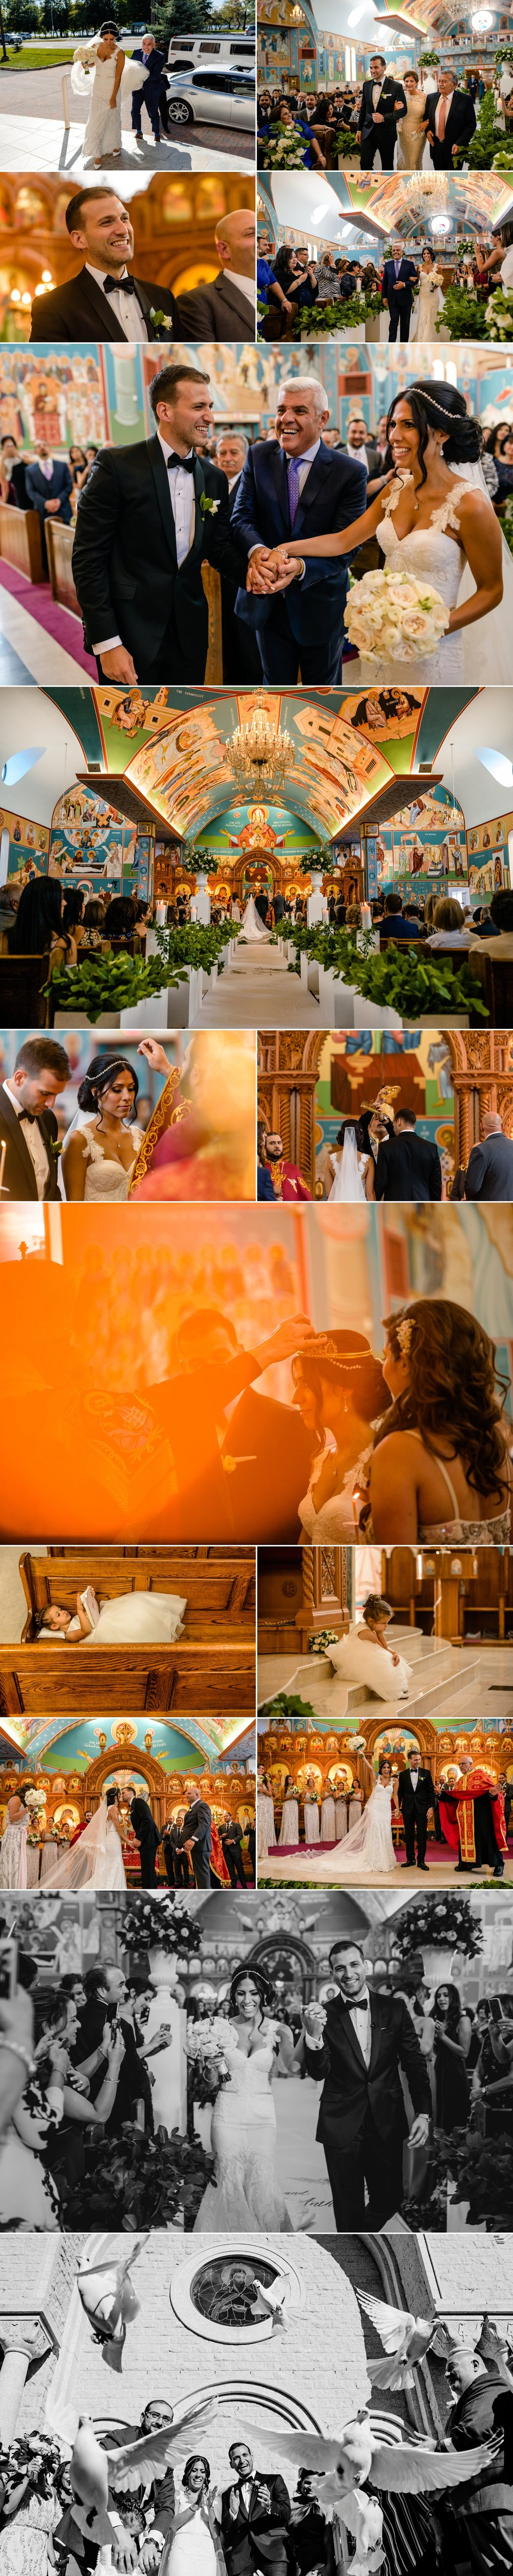 candid moments during a lebanese wedding ceremony at st elias cathedral in ottawa